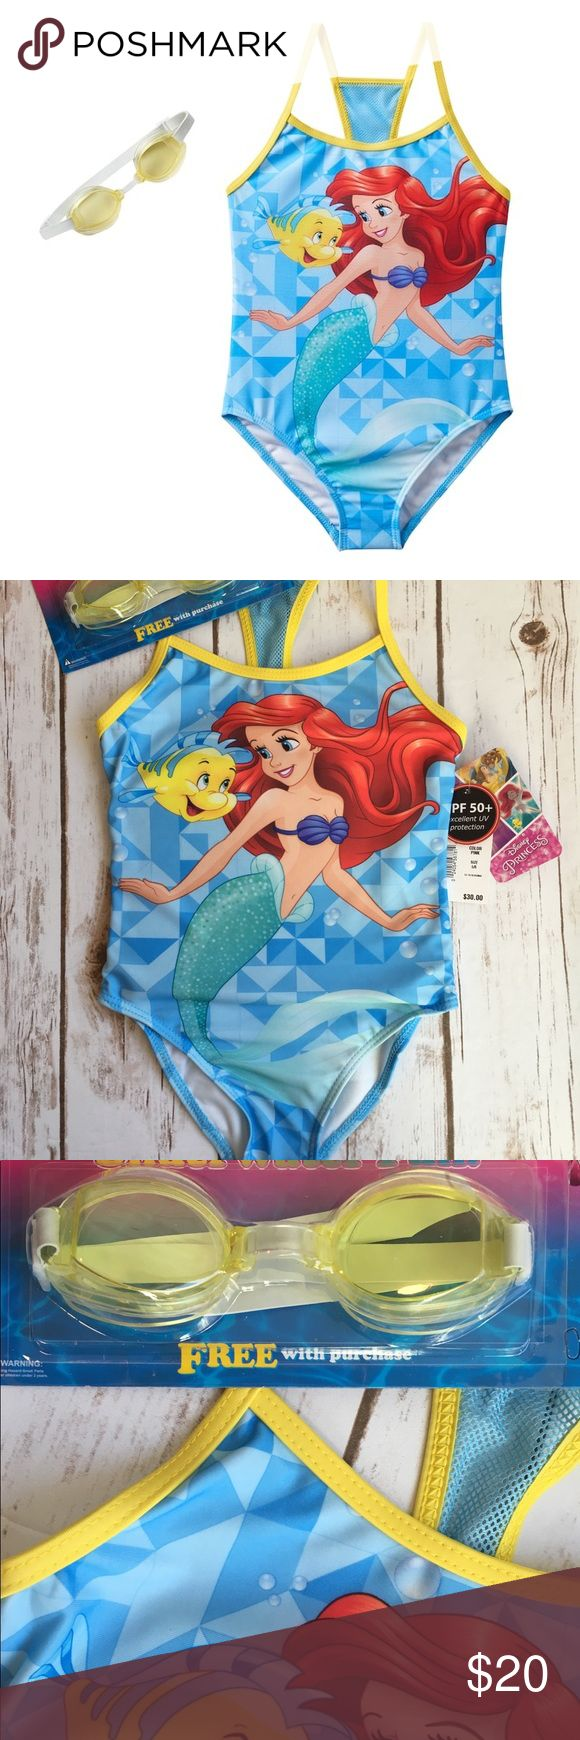 Disney Little Mermaid Ariel Girls Swimsuit 5/6 Disney Little Mermaid Ariel Girls One-Piece Swimsuit with goggles Size 5/6 PRODUCT FEATURES Includes goggles Scoopneck Mesh panel back Ariel & Flounder graphics UPF 50+ sun protection FABRIC & CARE Polyester, spandex Disney Swim One Piece